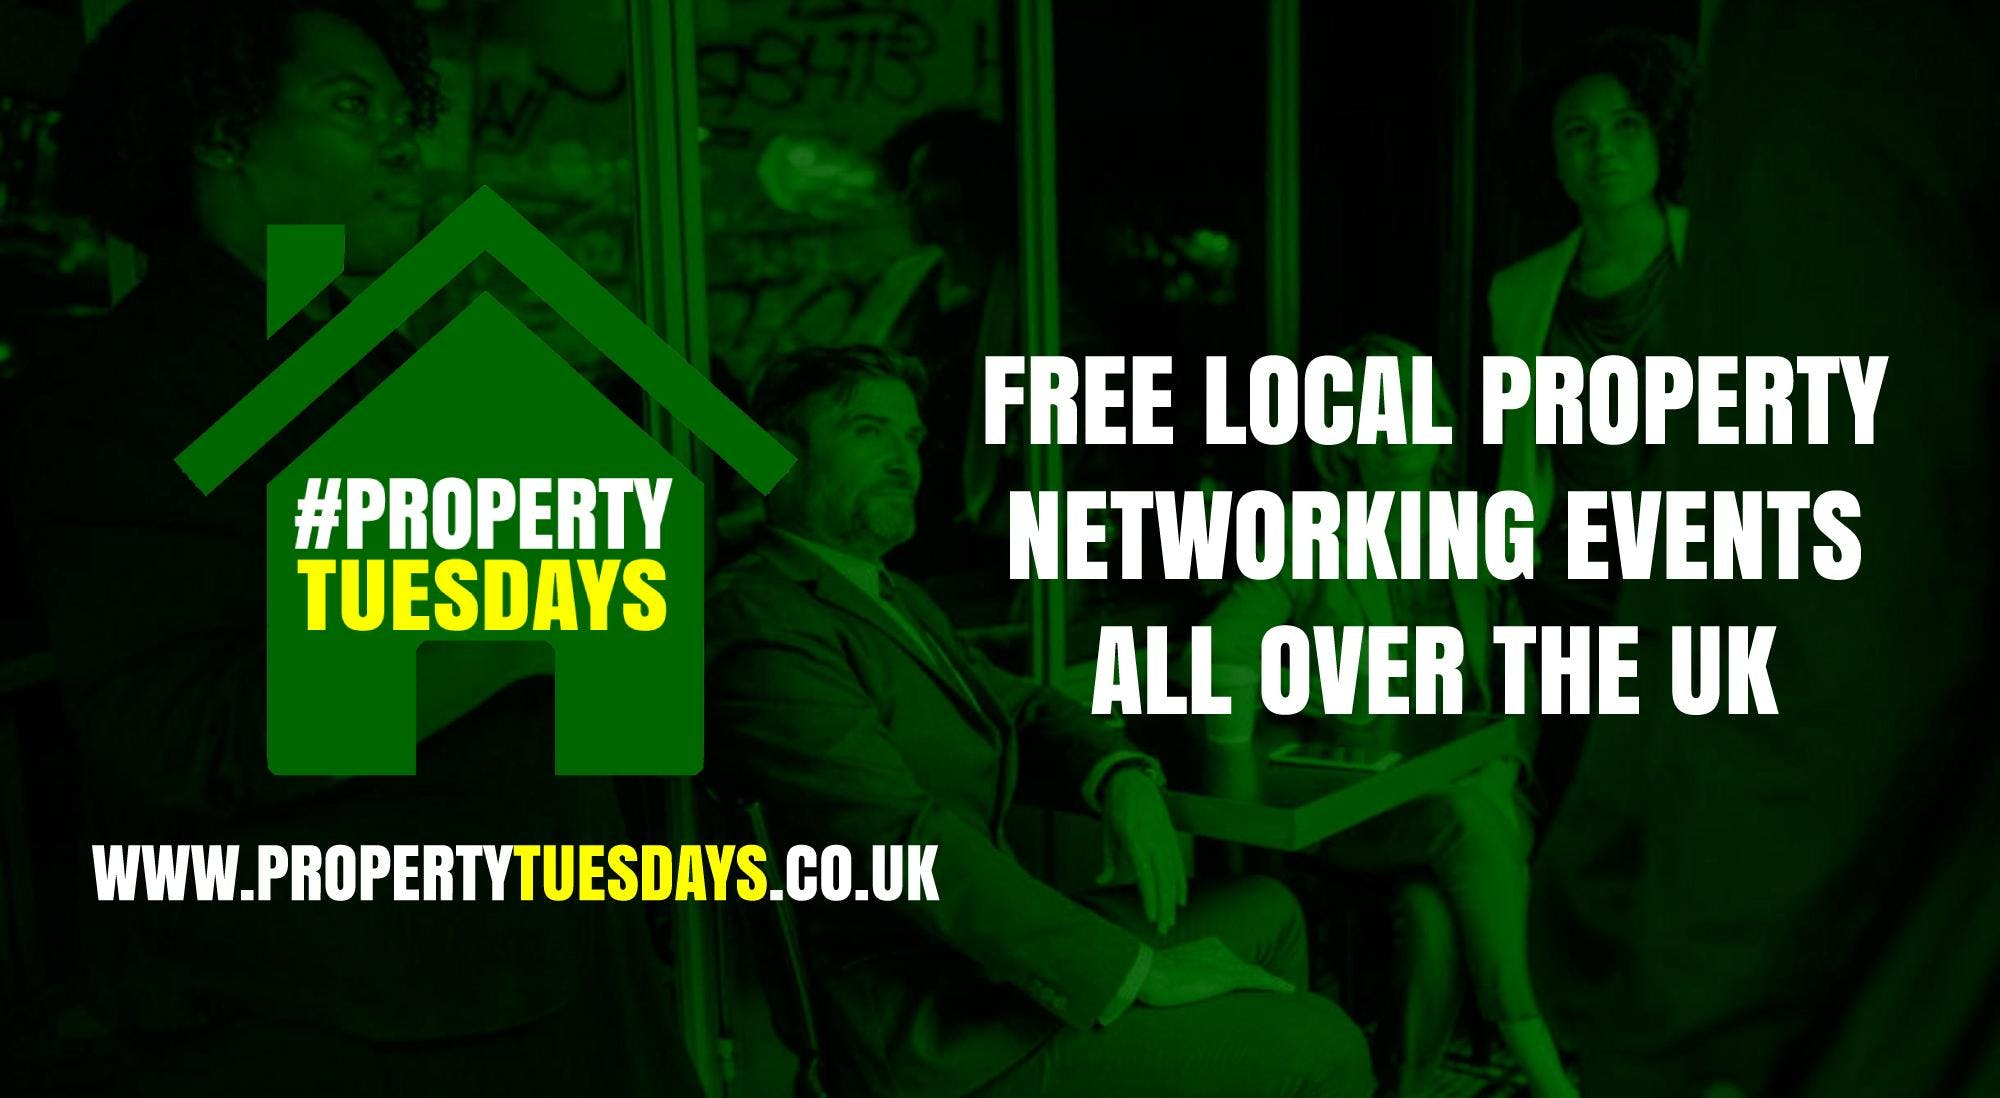 Property Tuesdays! Free property networking event in Solihull